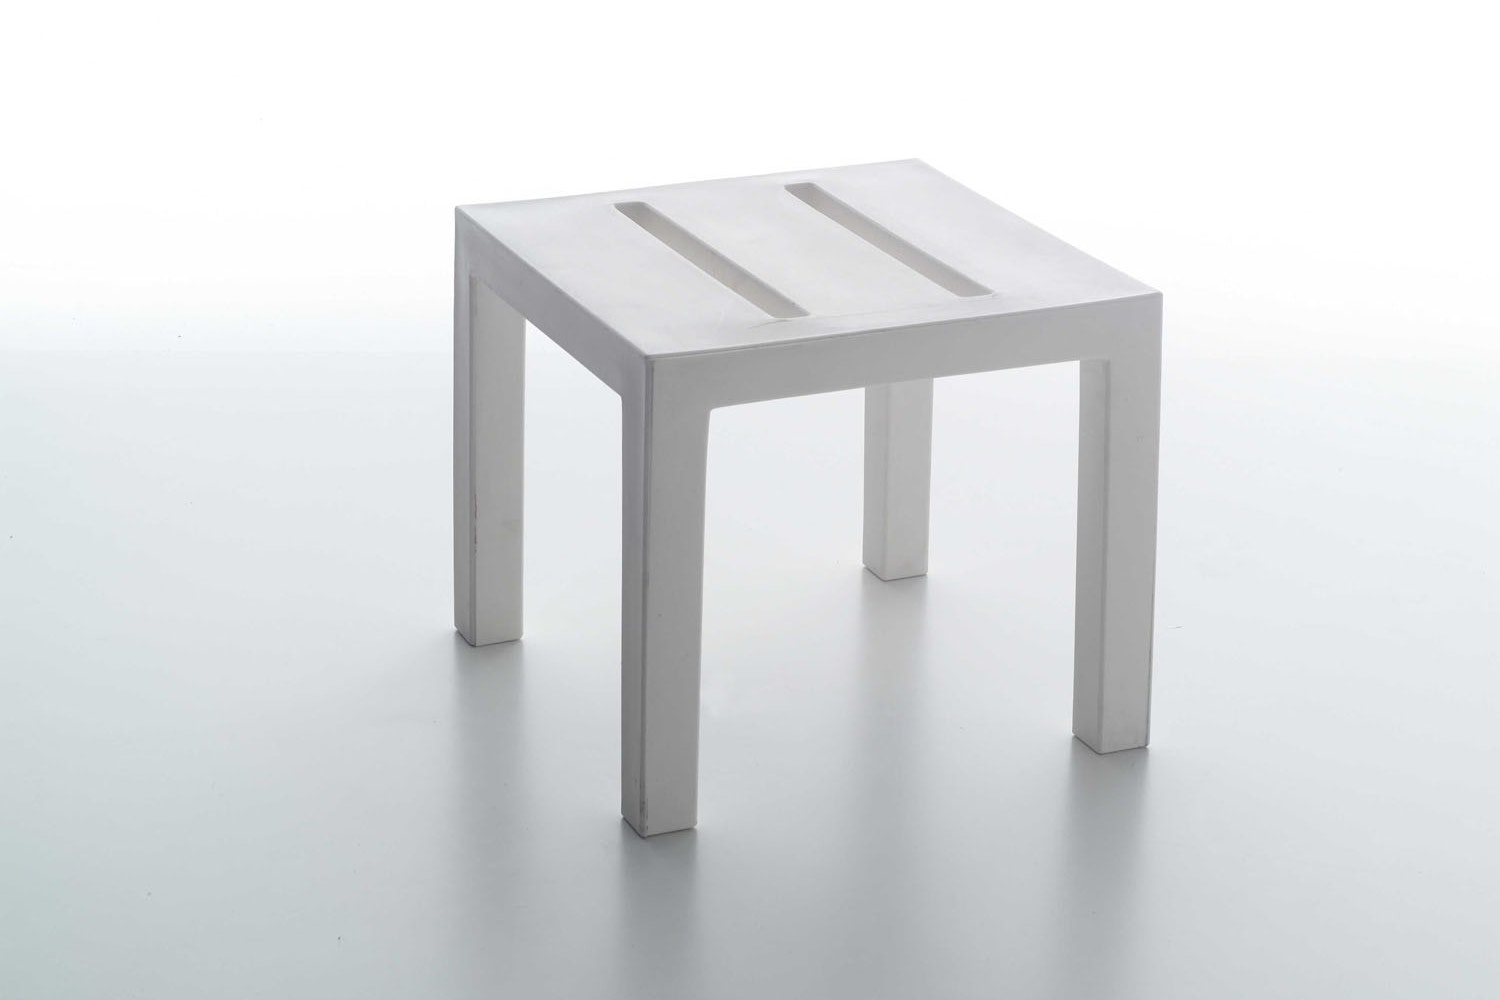 Handy45 Side Table by Luisa Bocchietto for Serralunga